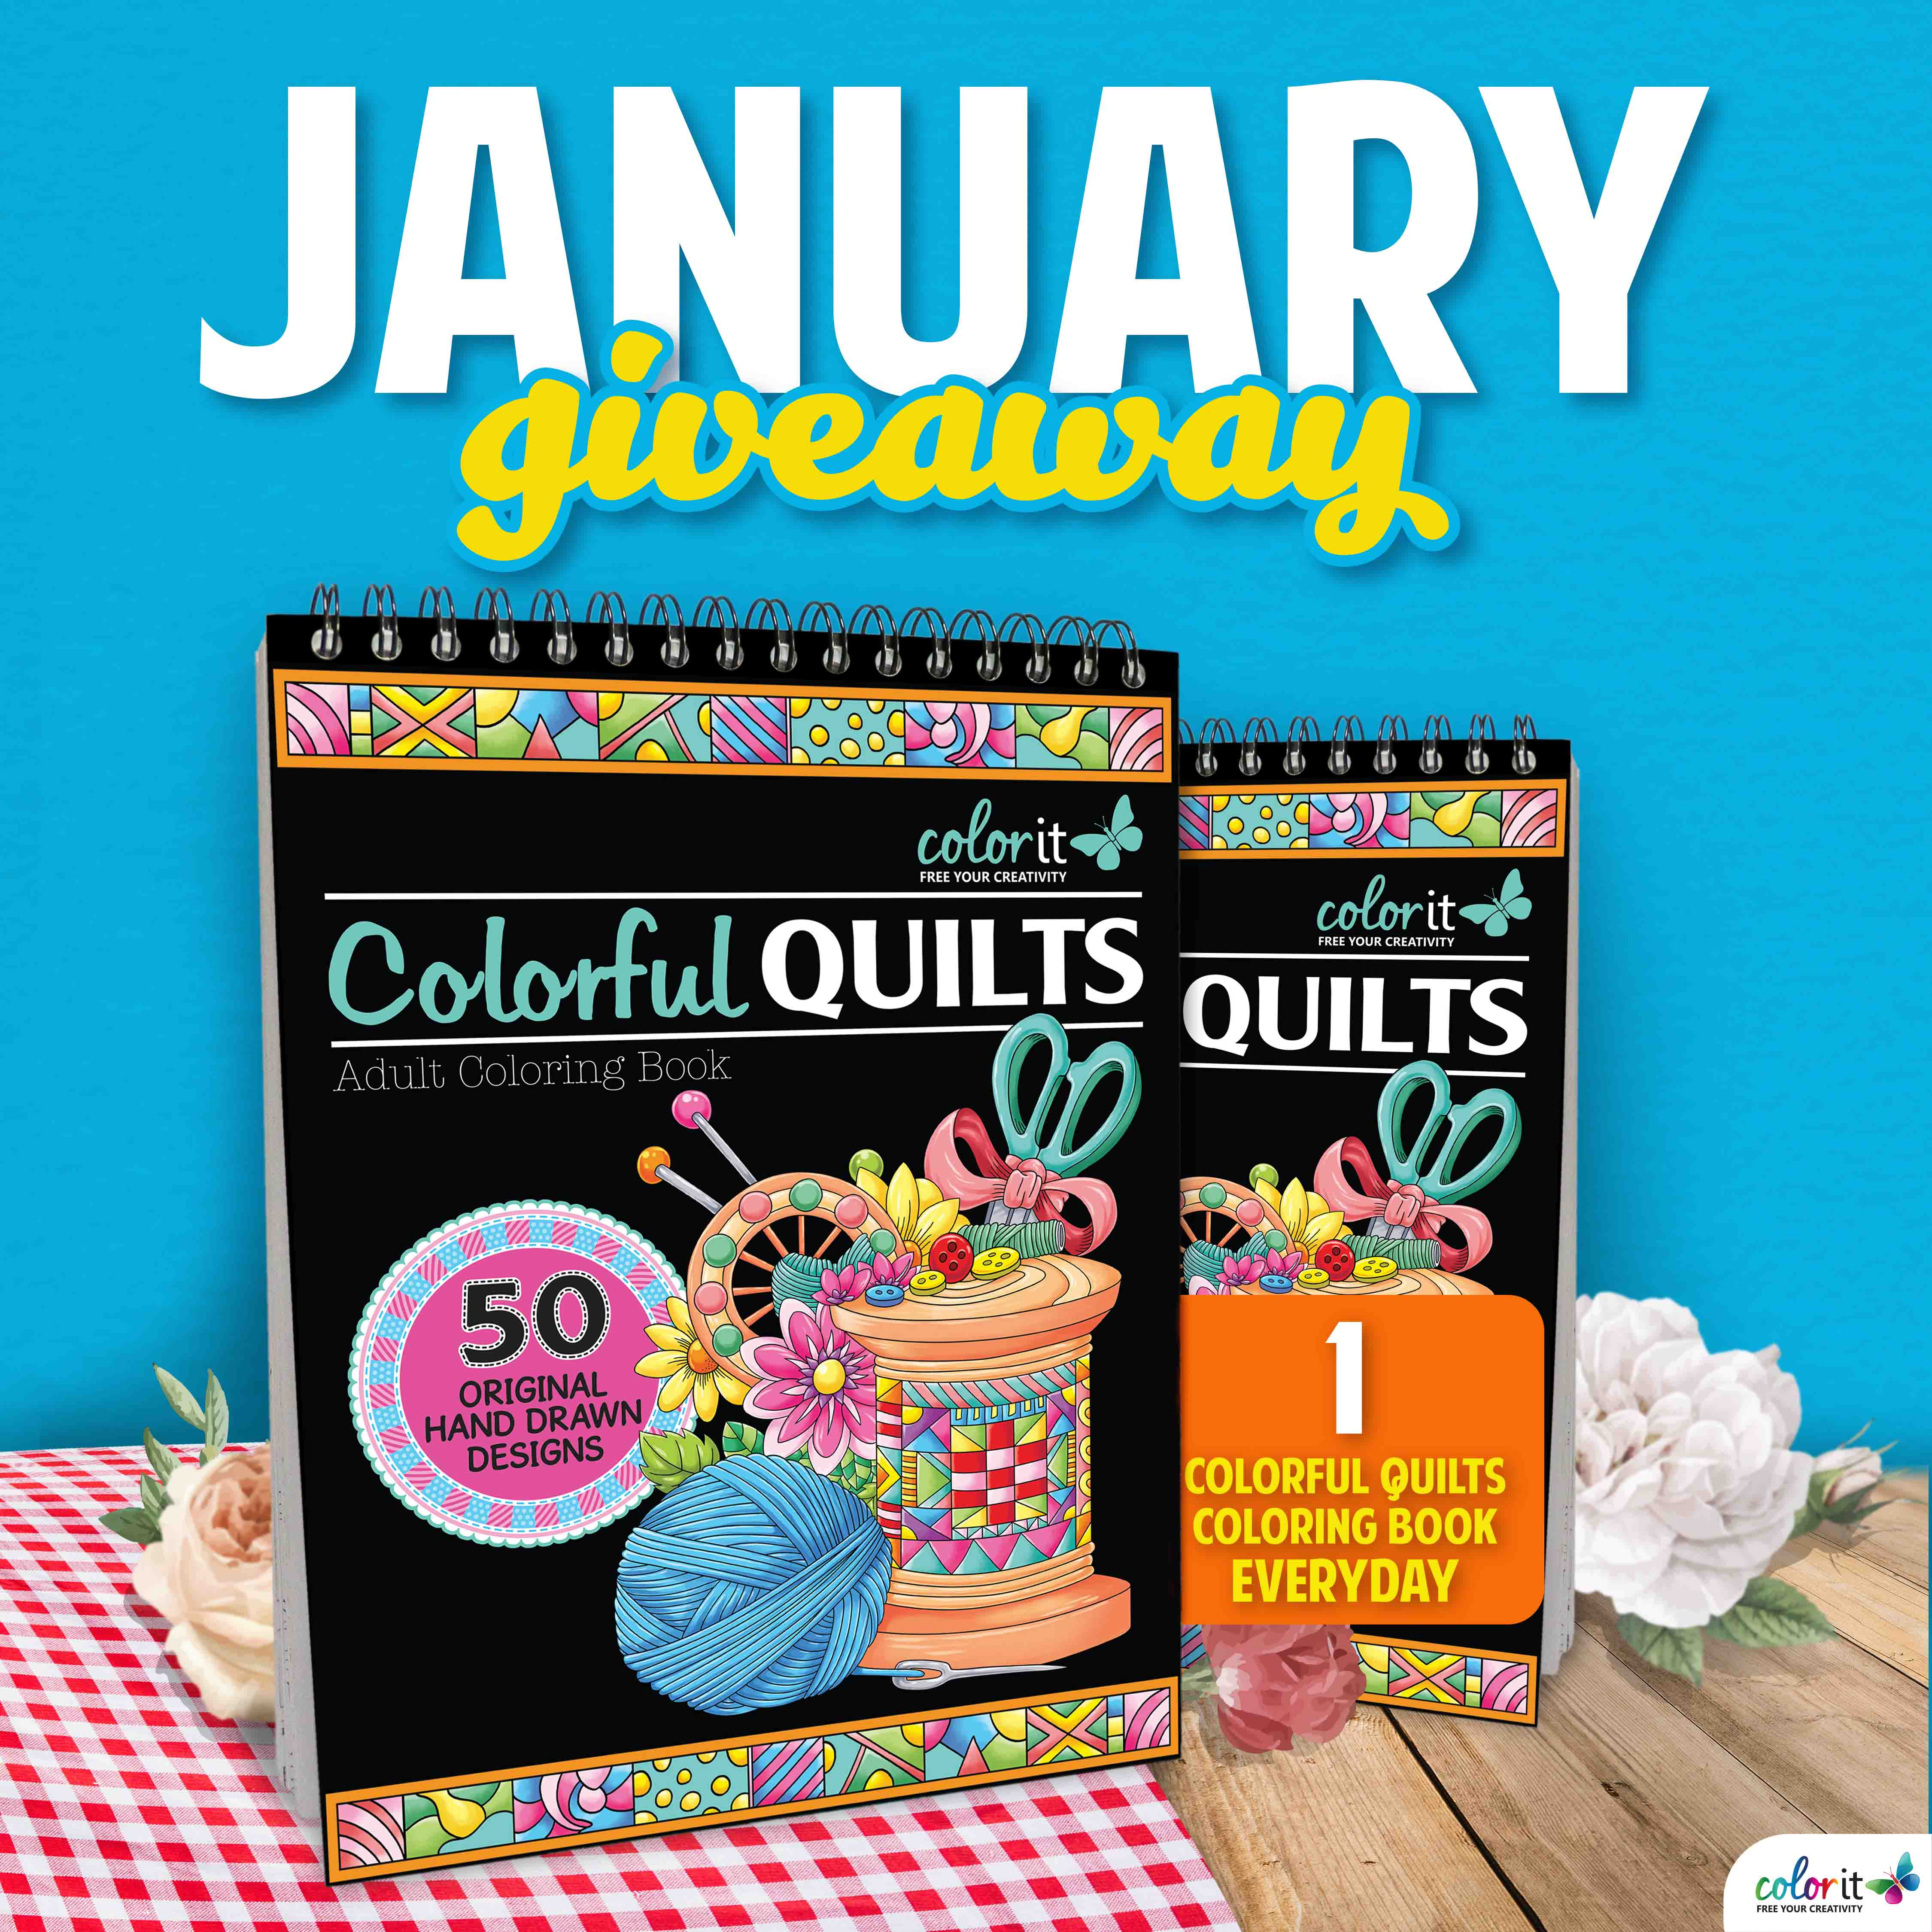 Enter to win a copy of Colorful Quilts Coloring Book Giveaway Image